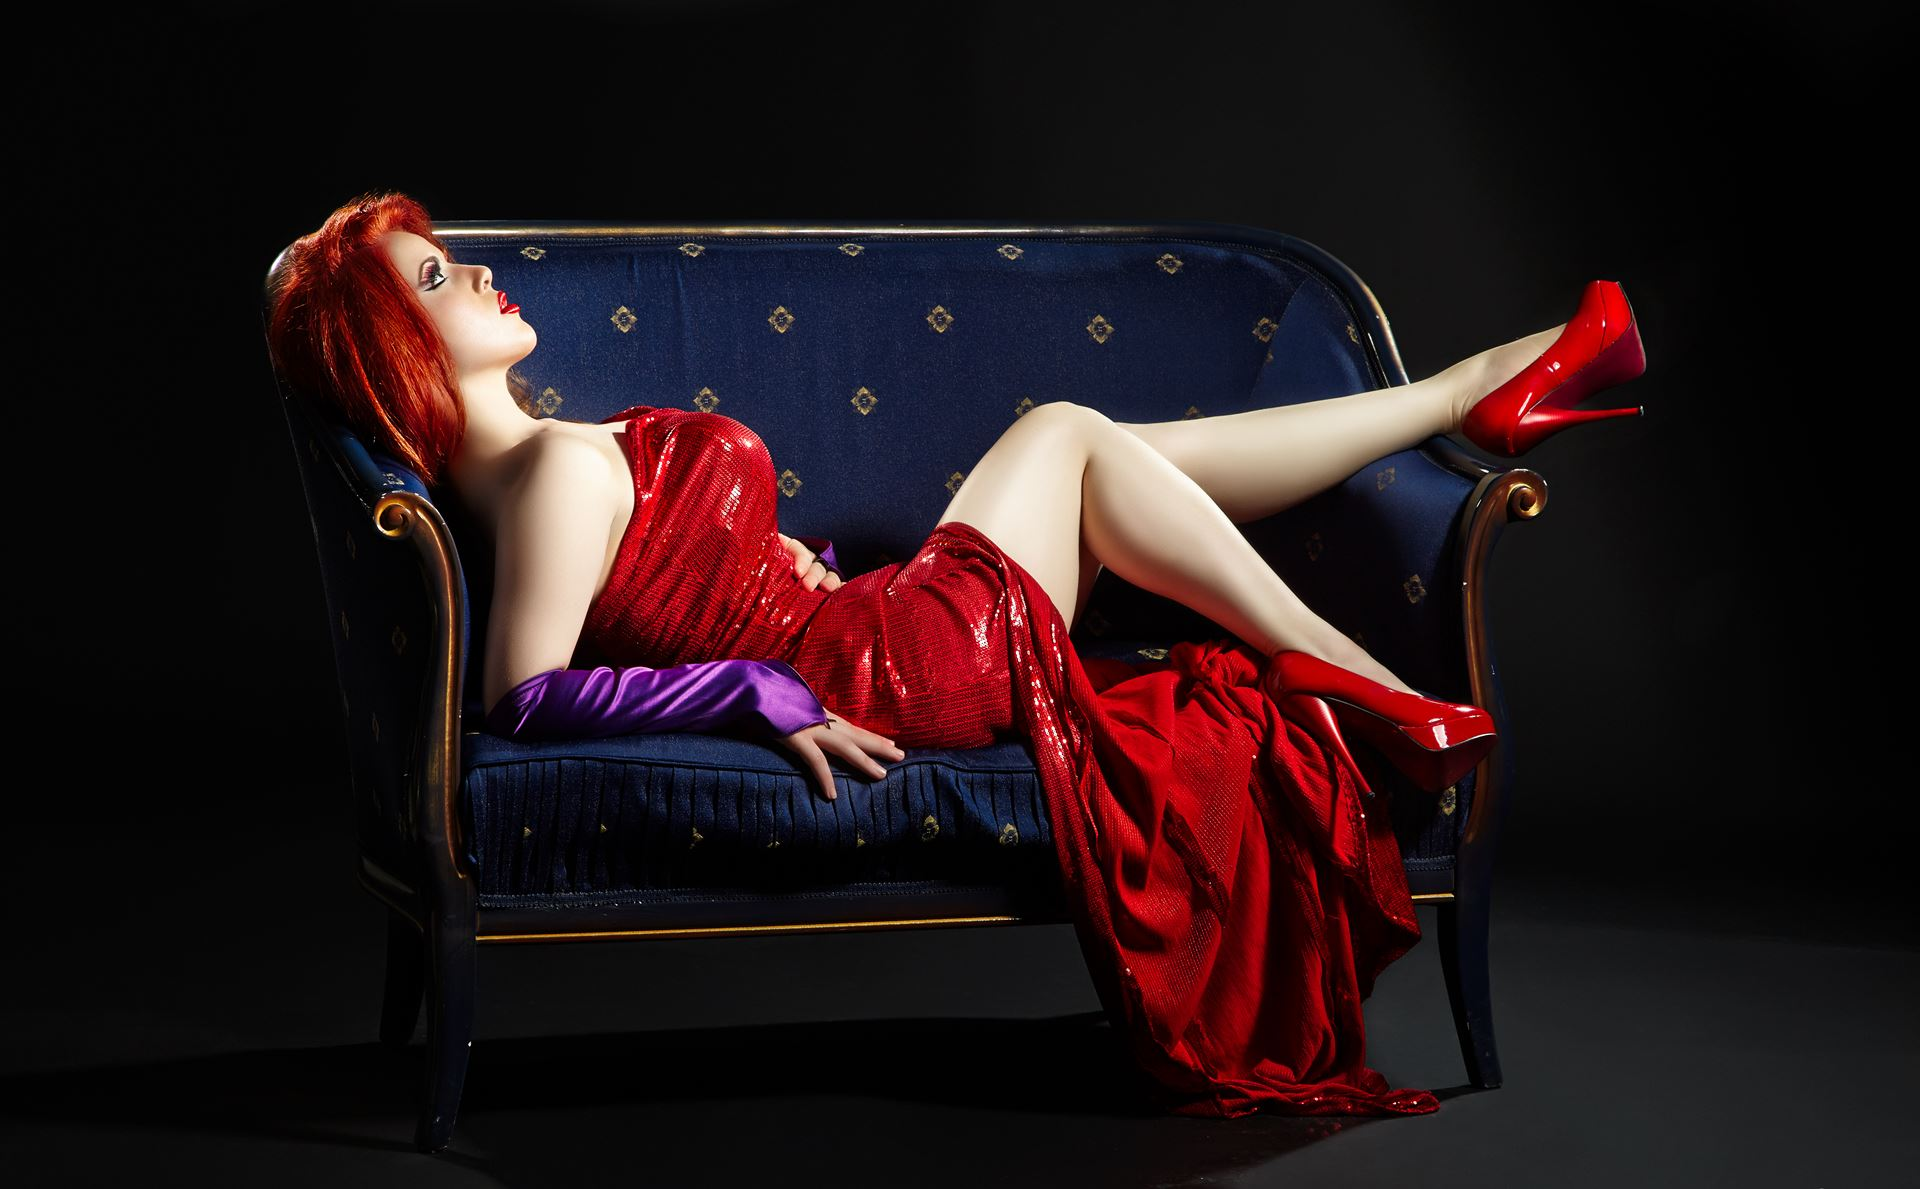 Jessica Rabbit Model Martina Devilish Dimoska Photo by Martin Spasovski Dress by Daniel Dimov MUAH by Studio Veronija